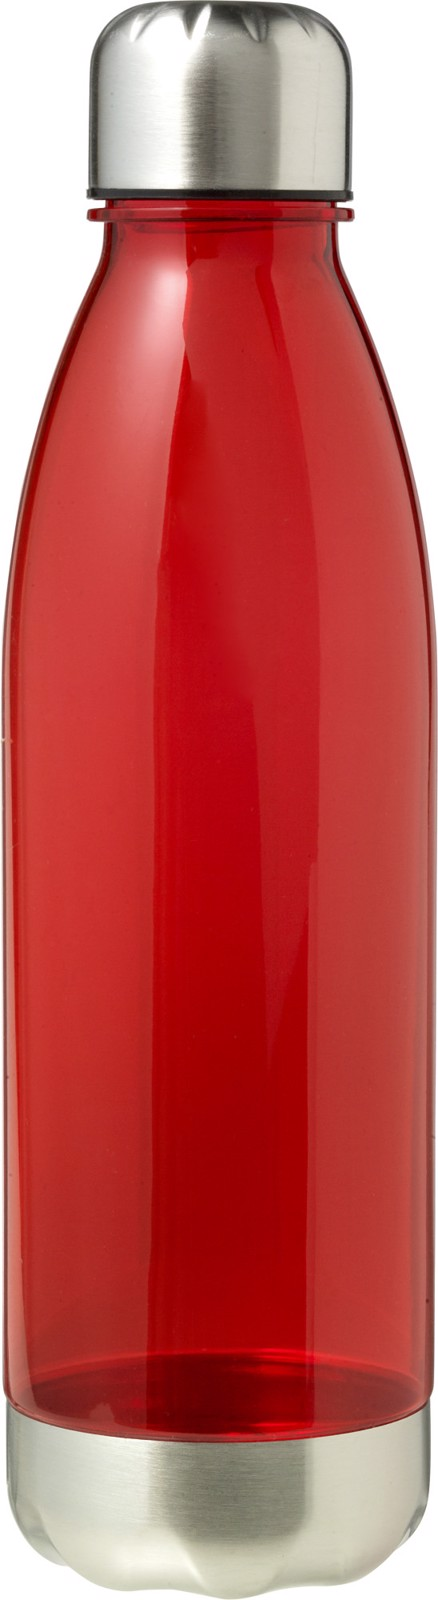 AS bottle - Red